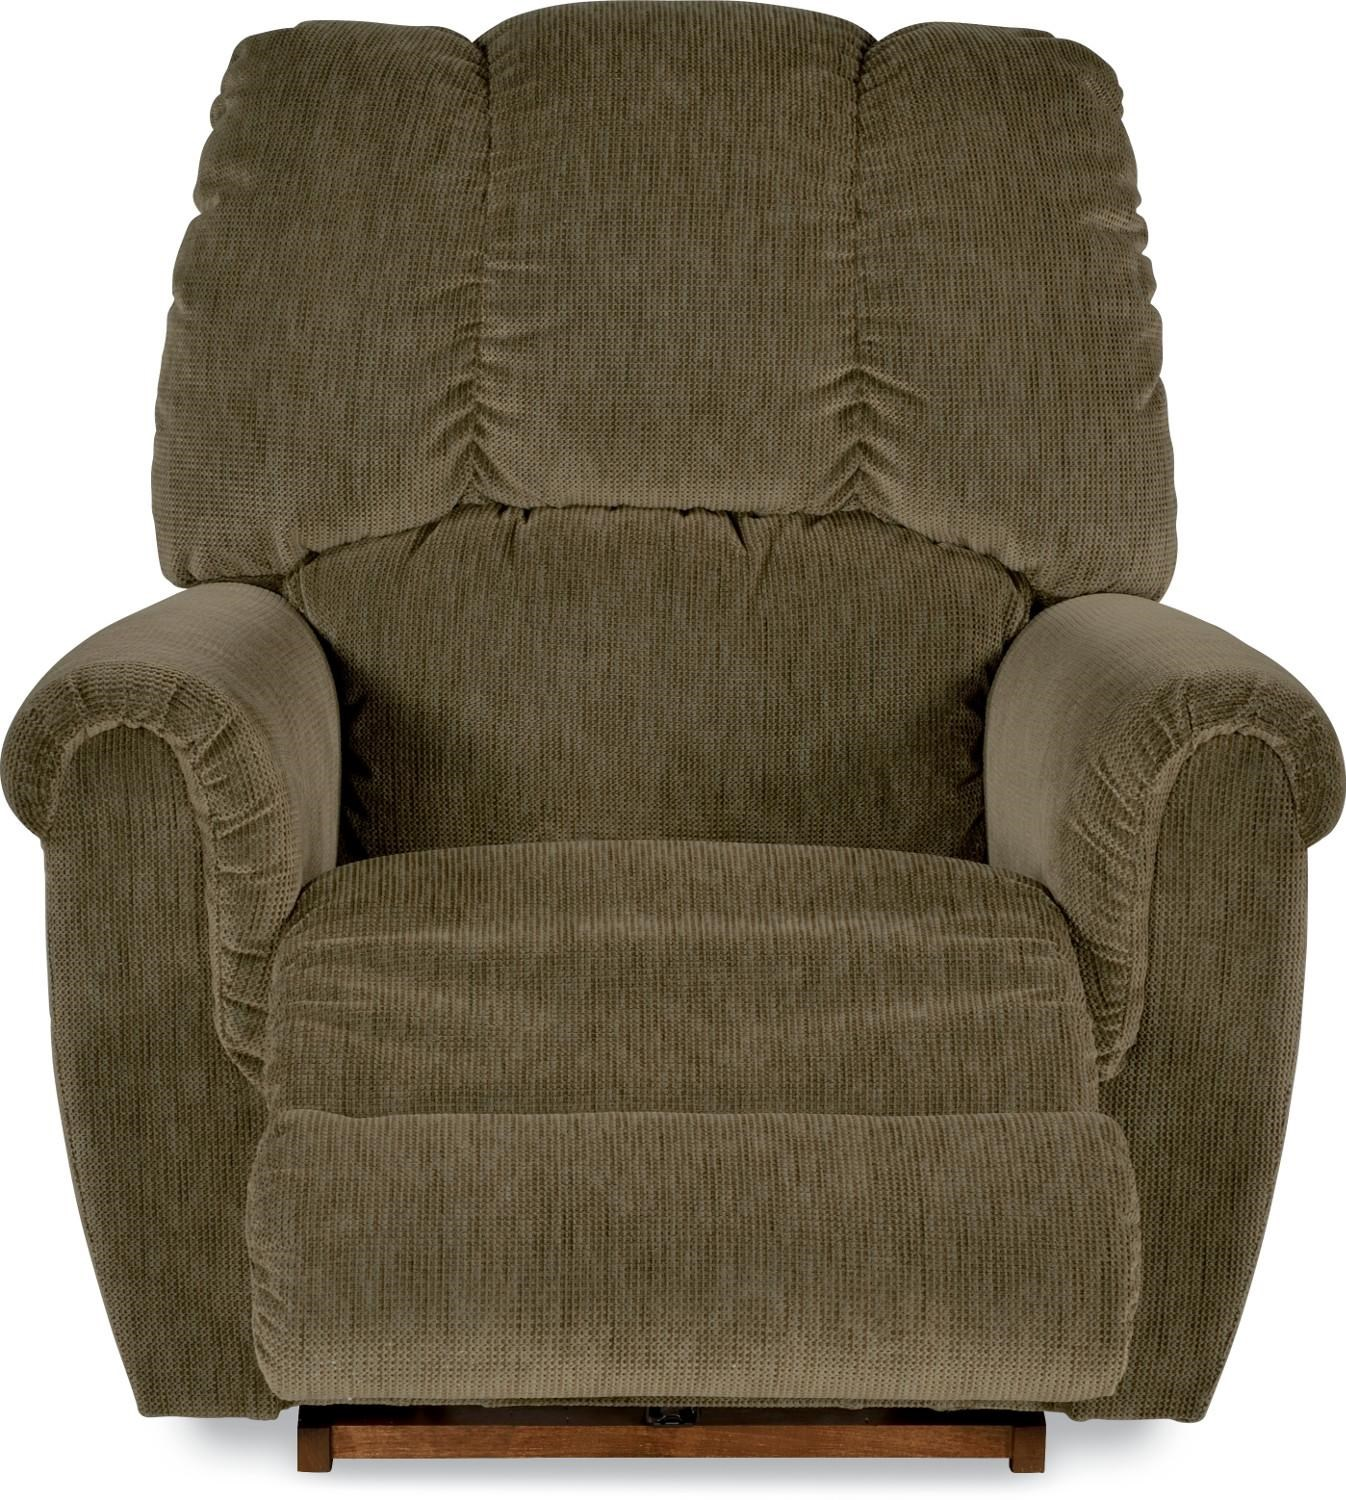 La-Z-Boy Fabric Conner Thistle Rocker Recliner - Great American Home Store - Three Way Recliners  sc 1 st  Great American Home Store : lazy boy recliner adjustment - islam-shia.org